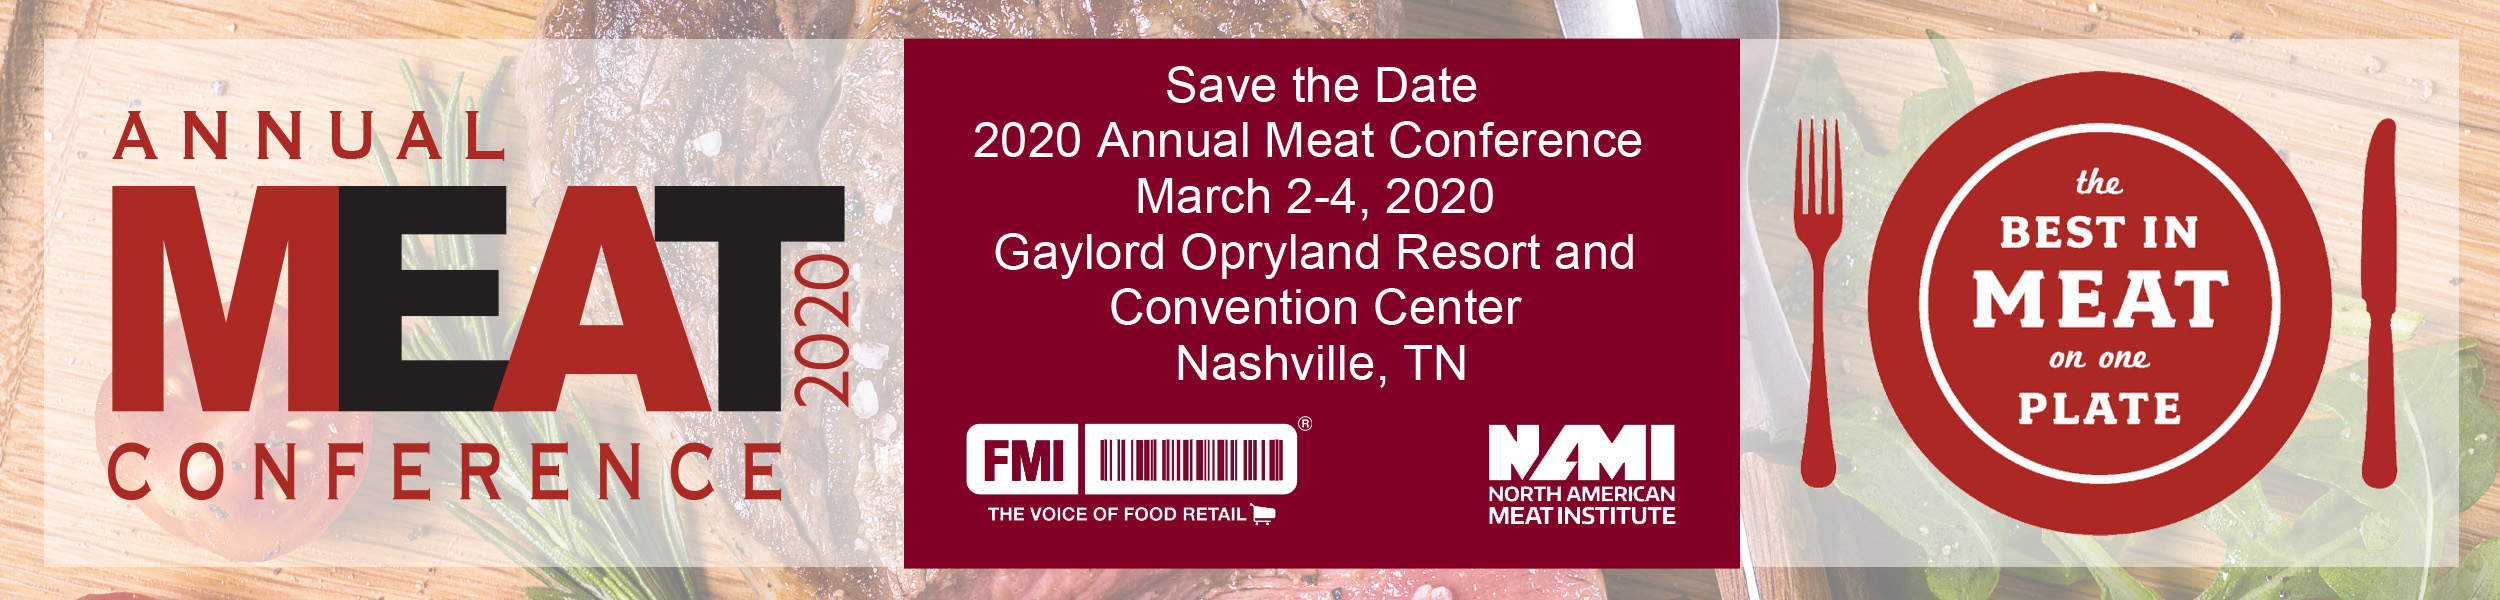 About the event | Meat Conference